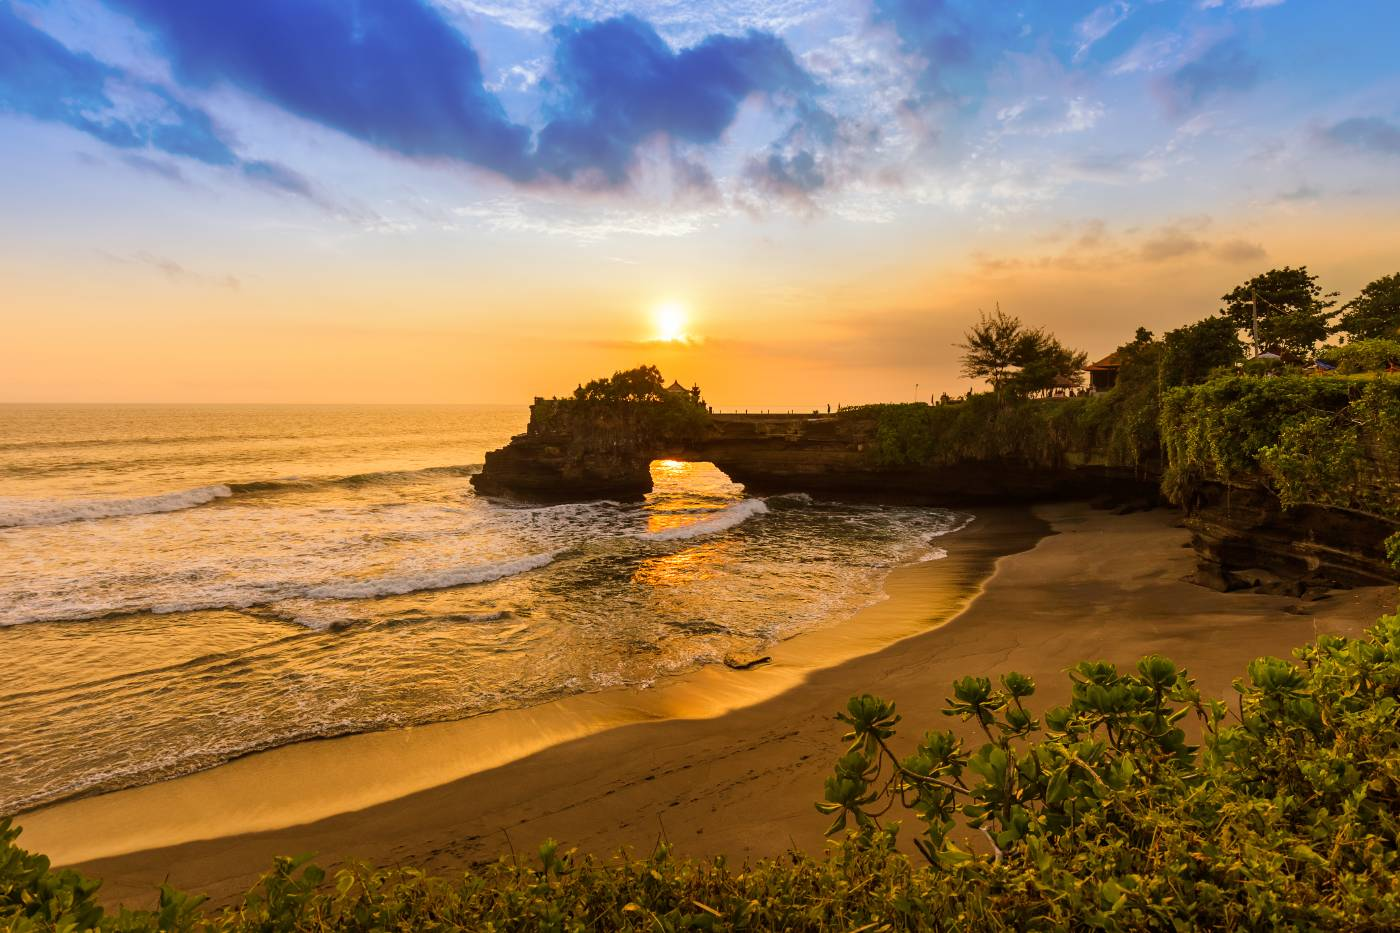 https://www.seasonzindia.com/international/bali-honeymoon-packages